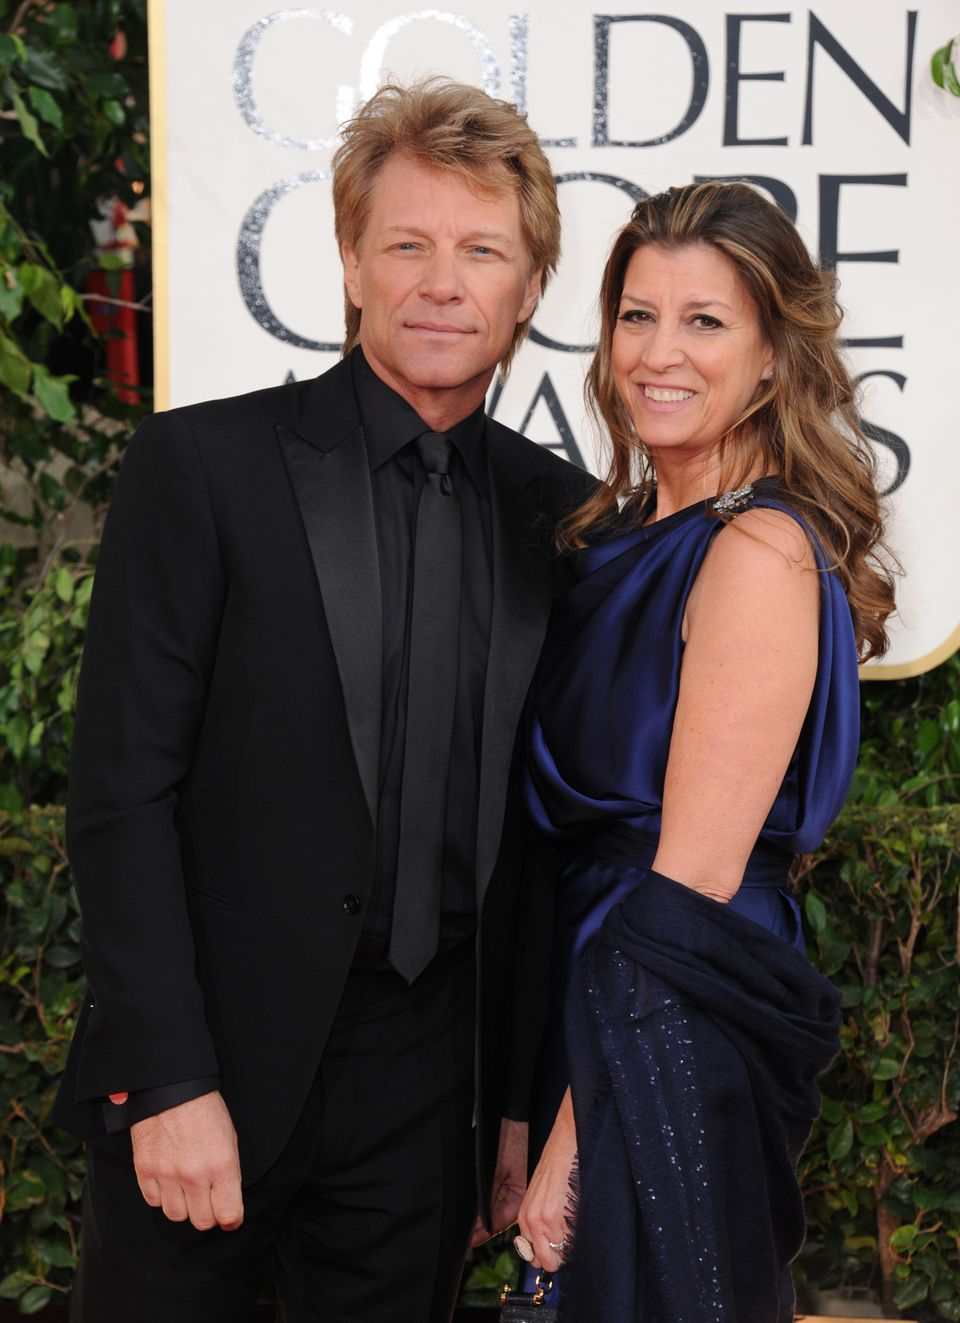 "Jon Bon Jovi and Dorothea Hurley were high school sweethearts, and <a href=""http://www.dailymail.co.uk/tvshowbiz/article-1314"